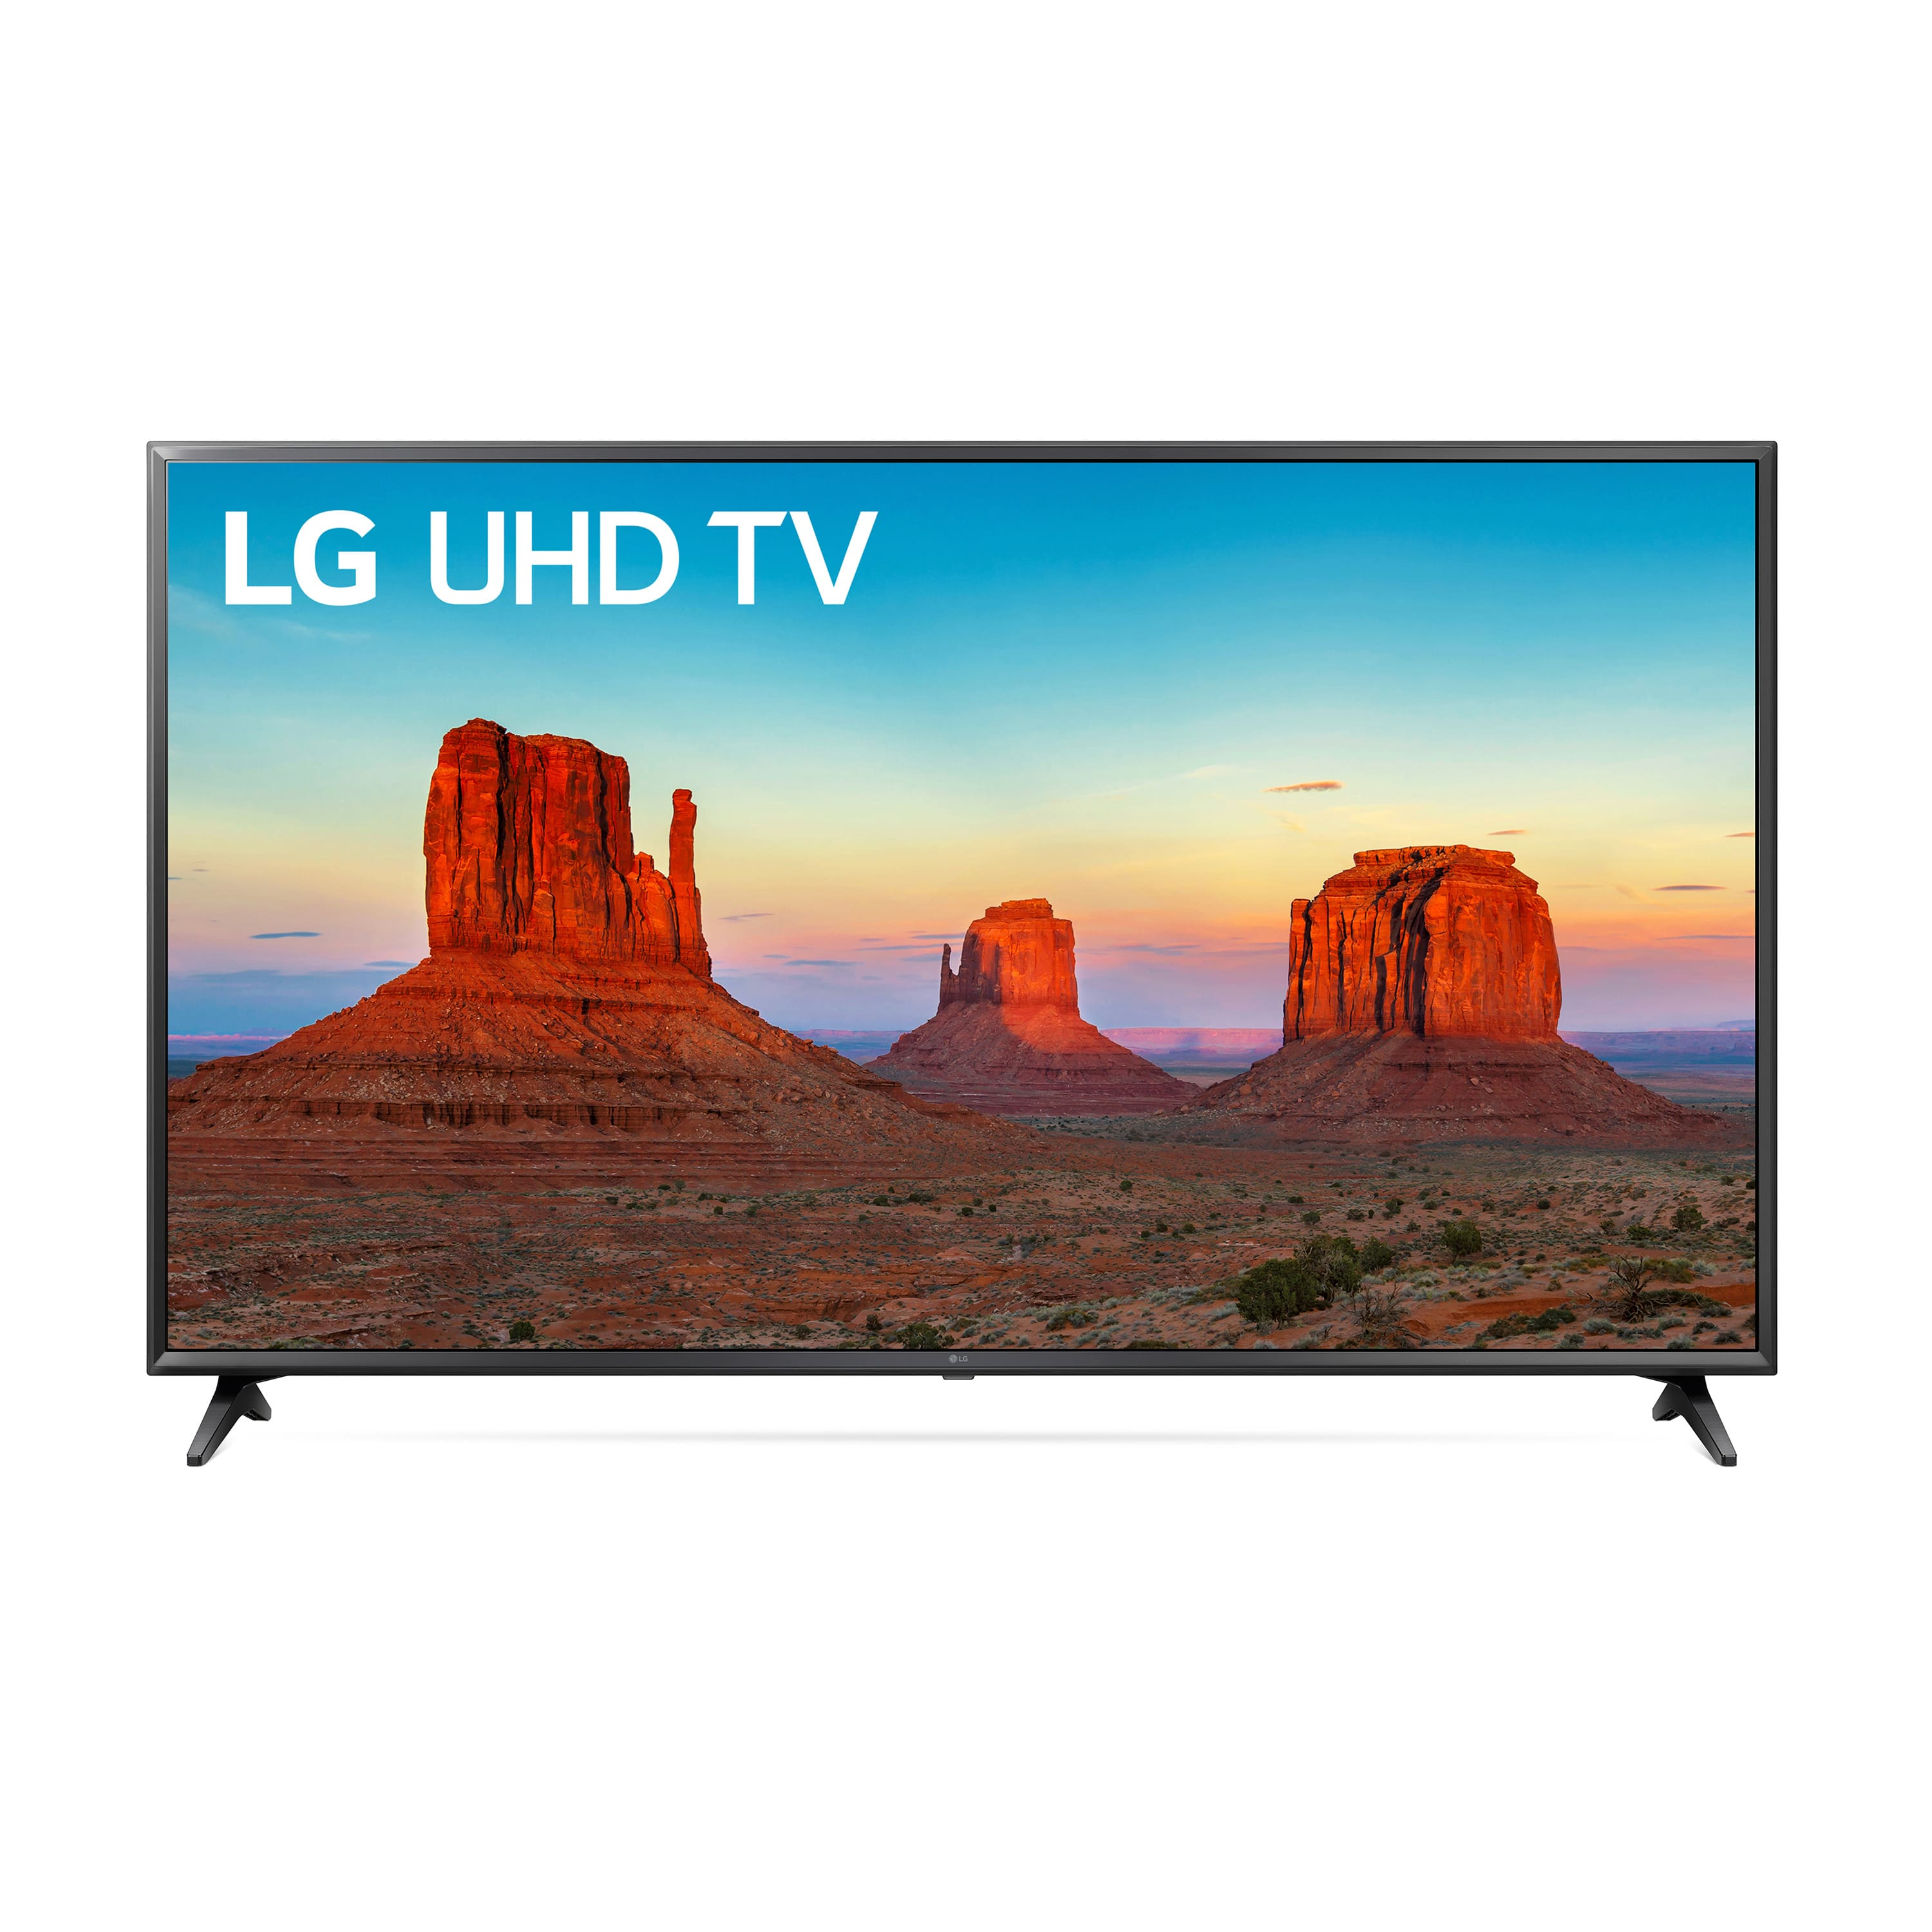 "LG 65"" Class 4K (2160) HDR Smart LED UHD TV 65UK6200PUA Walmart Clearance B&M YMMV - $154.00"